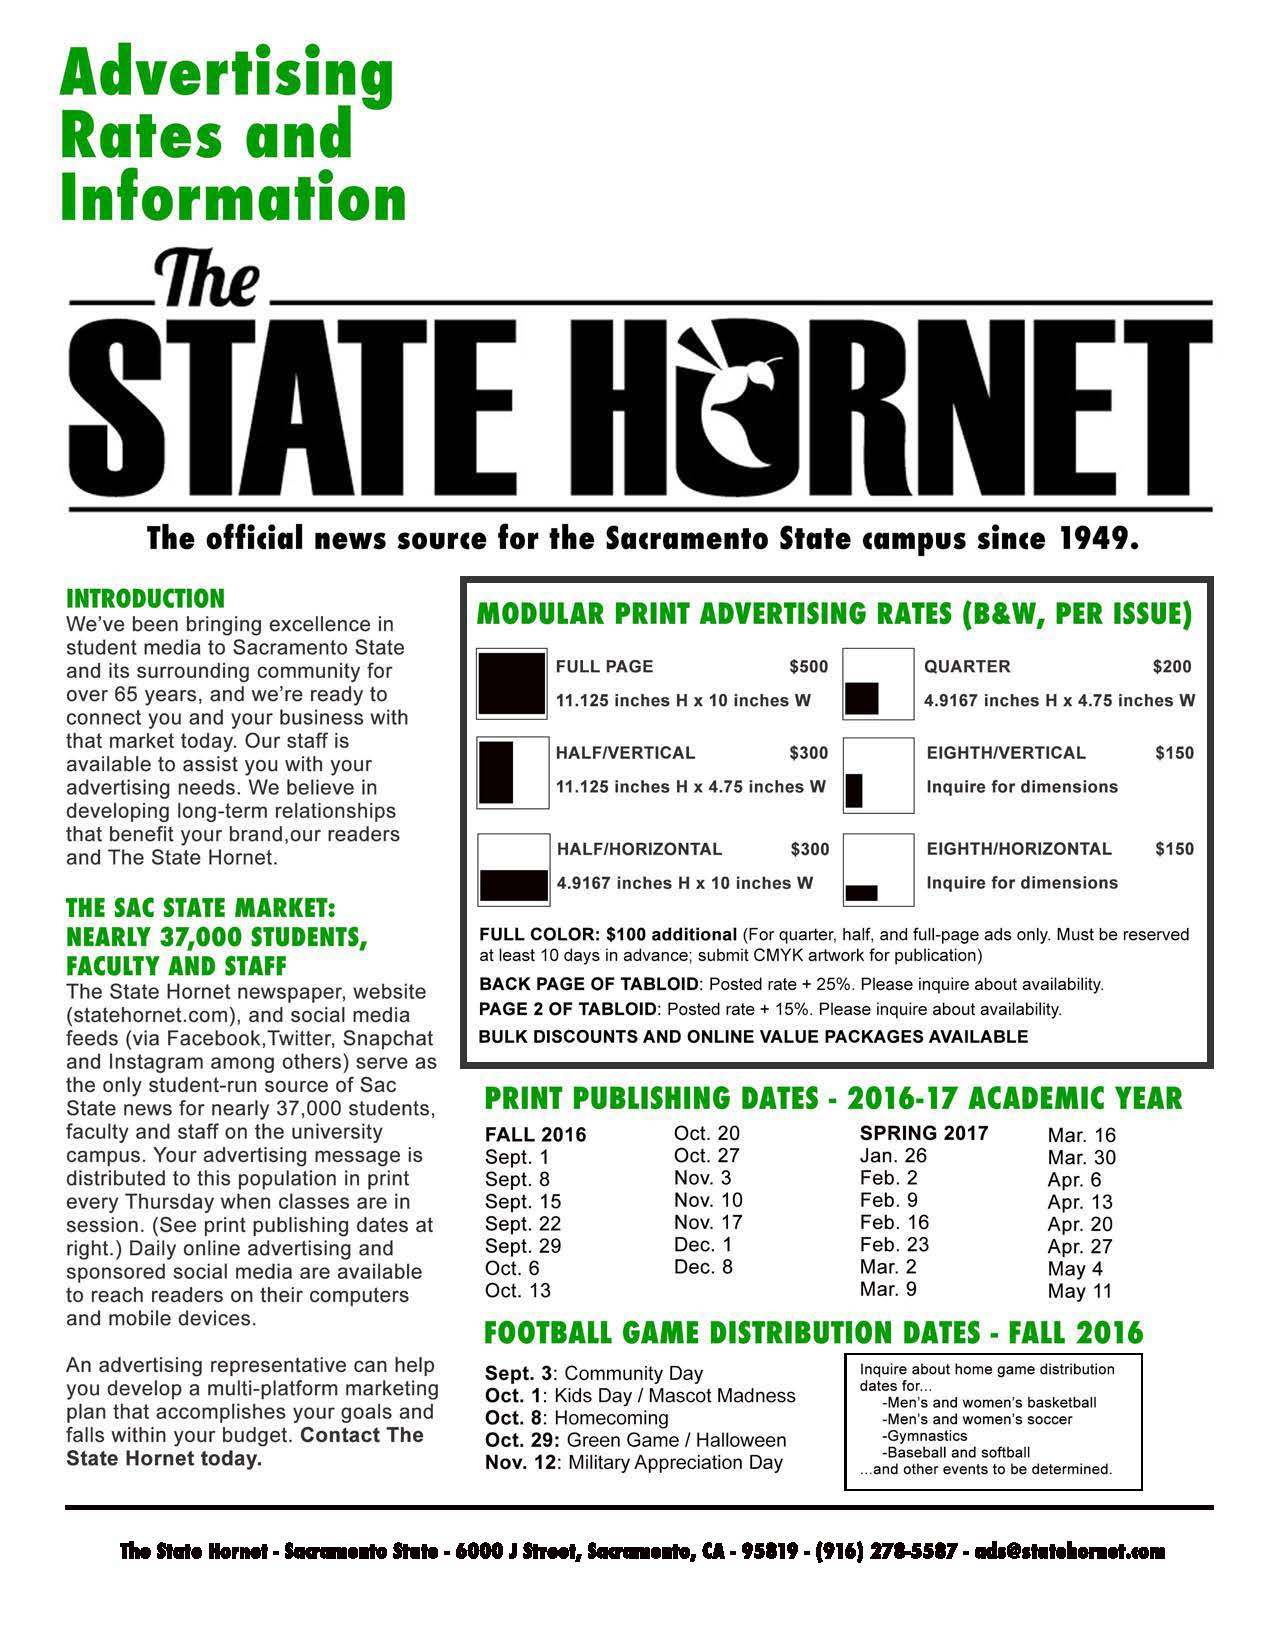 state-hornet-rate-card-2016-17_page_1